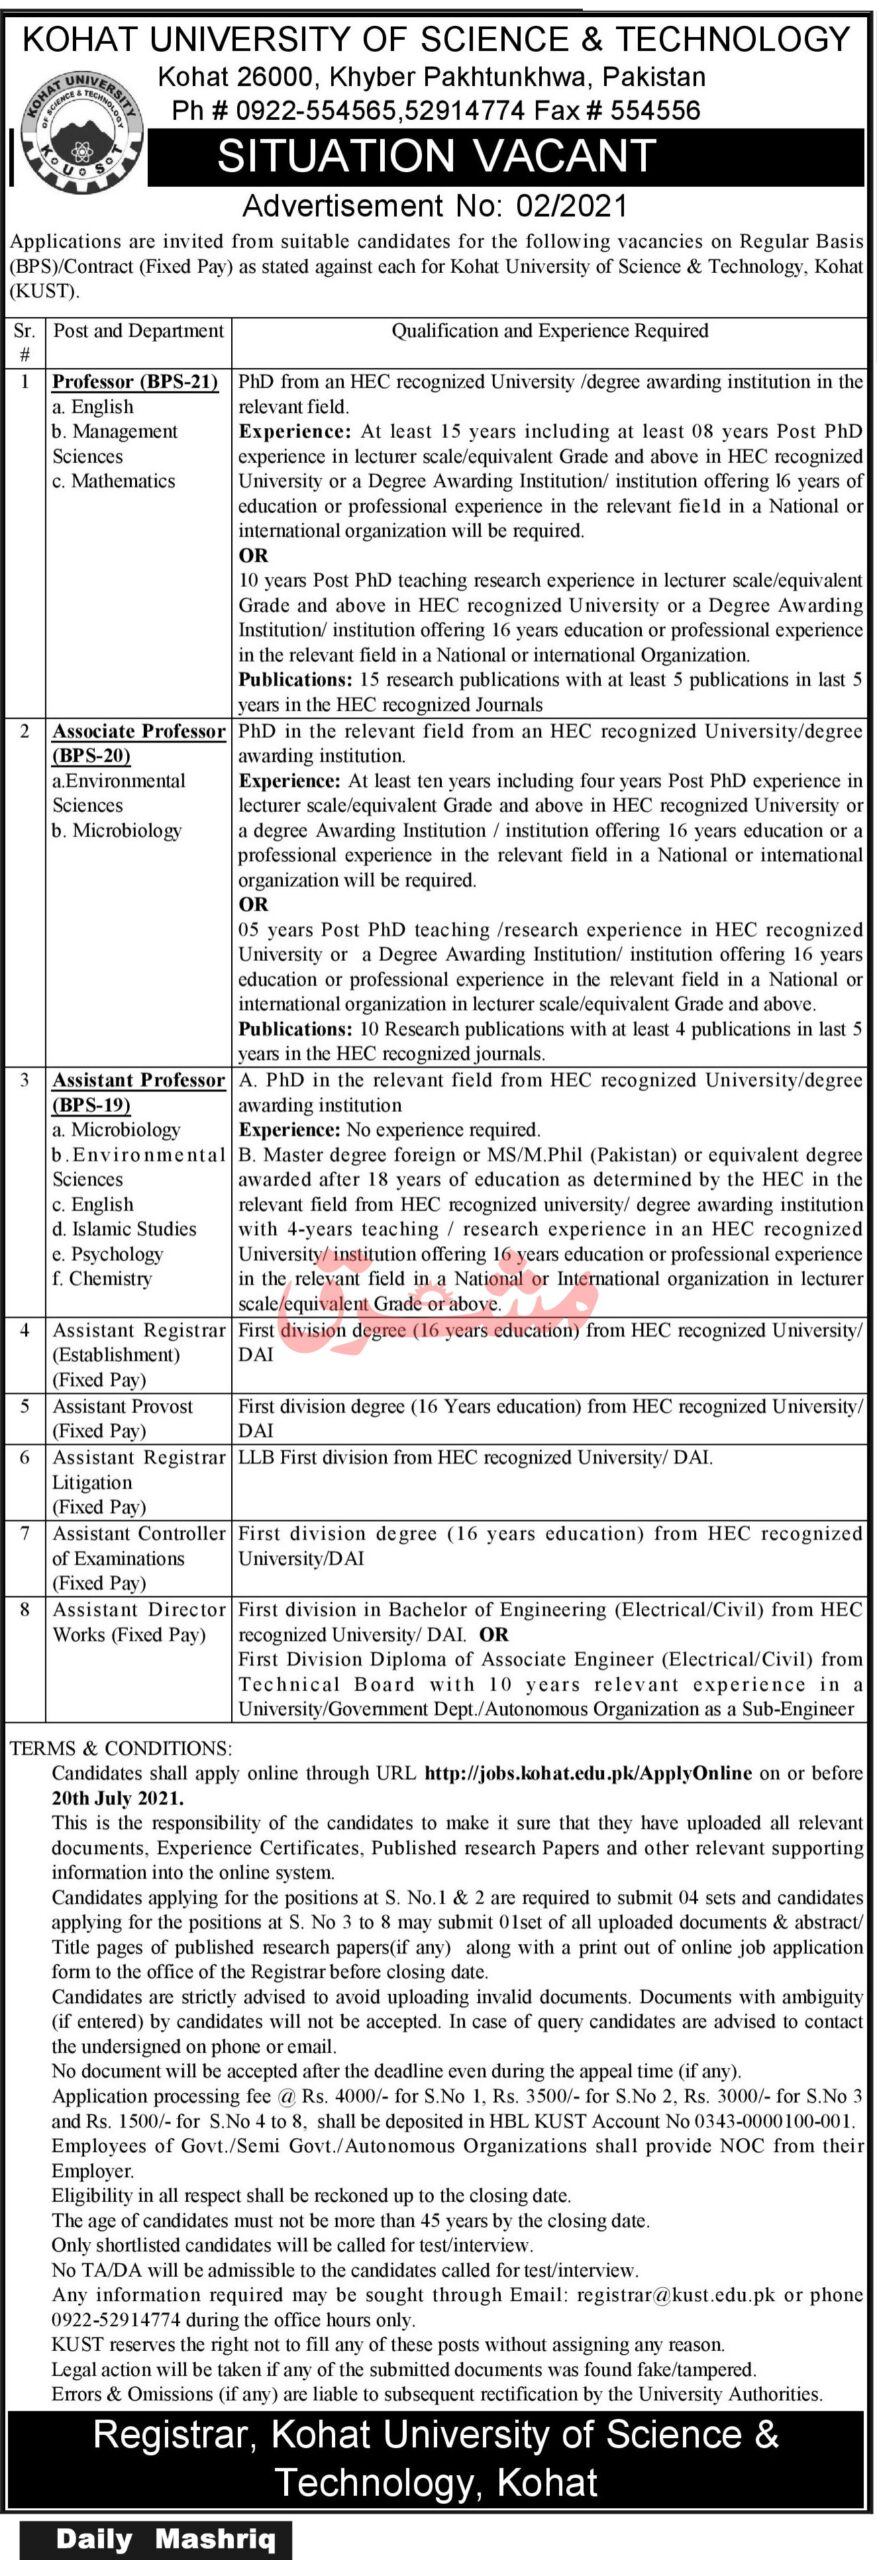 Kohat University Of Science and Technology Jobs Advertisement 2021